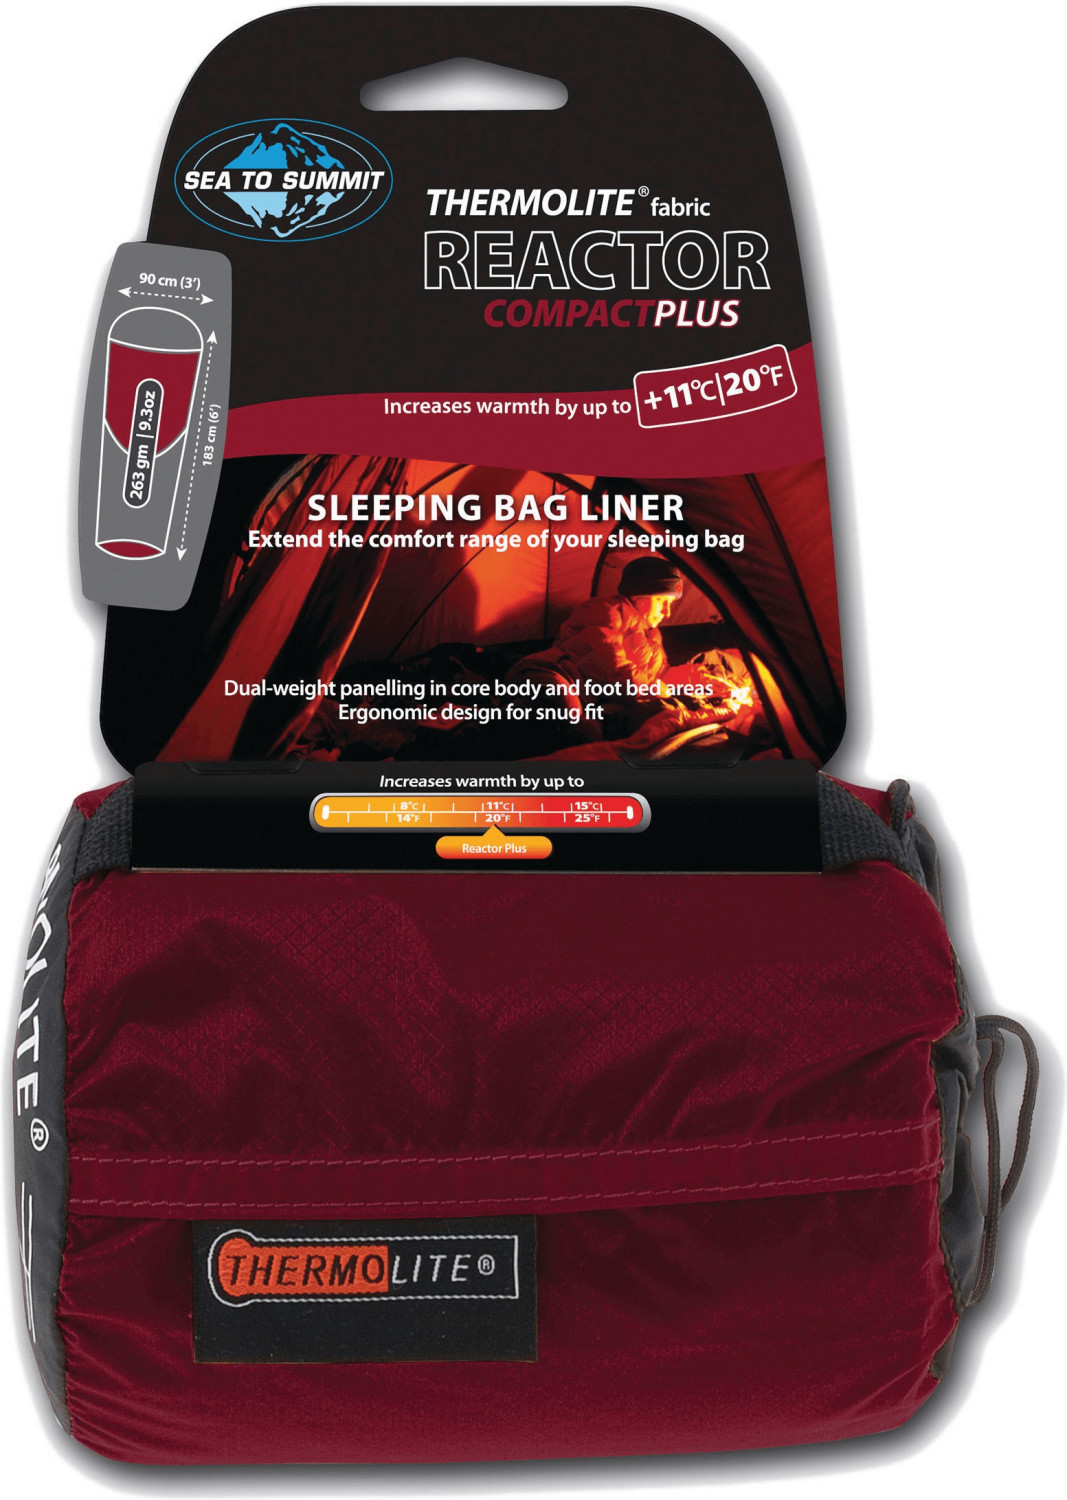 Sea to Summit Thermolite Reactor Liner (183x90, black/red)